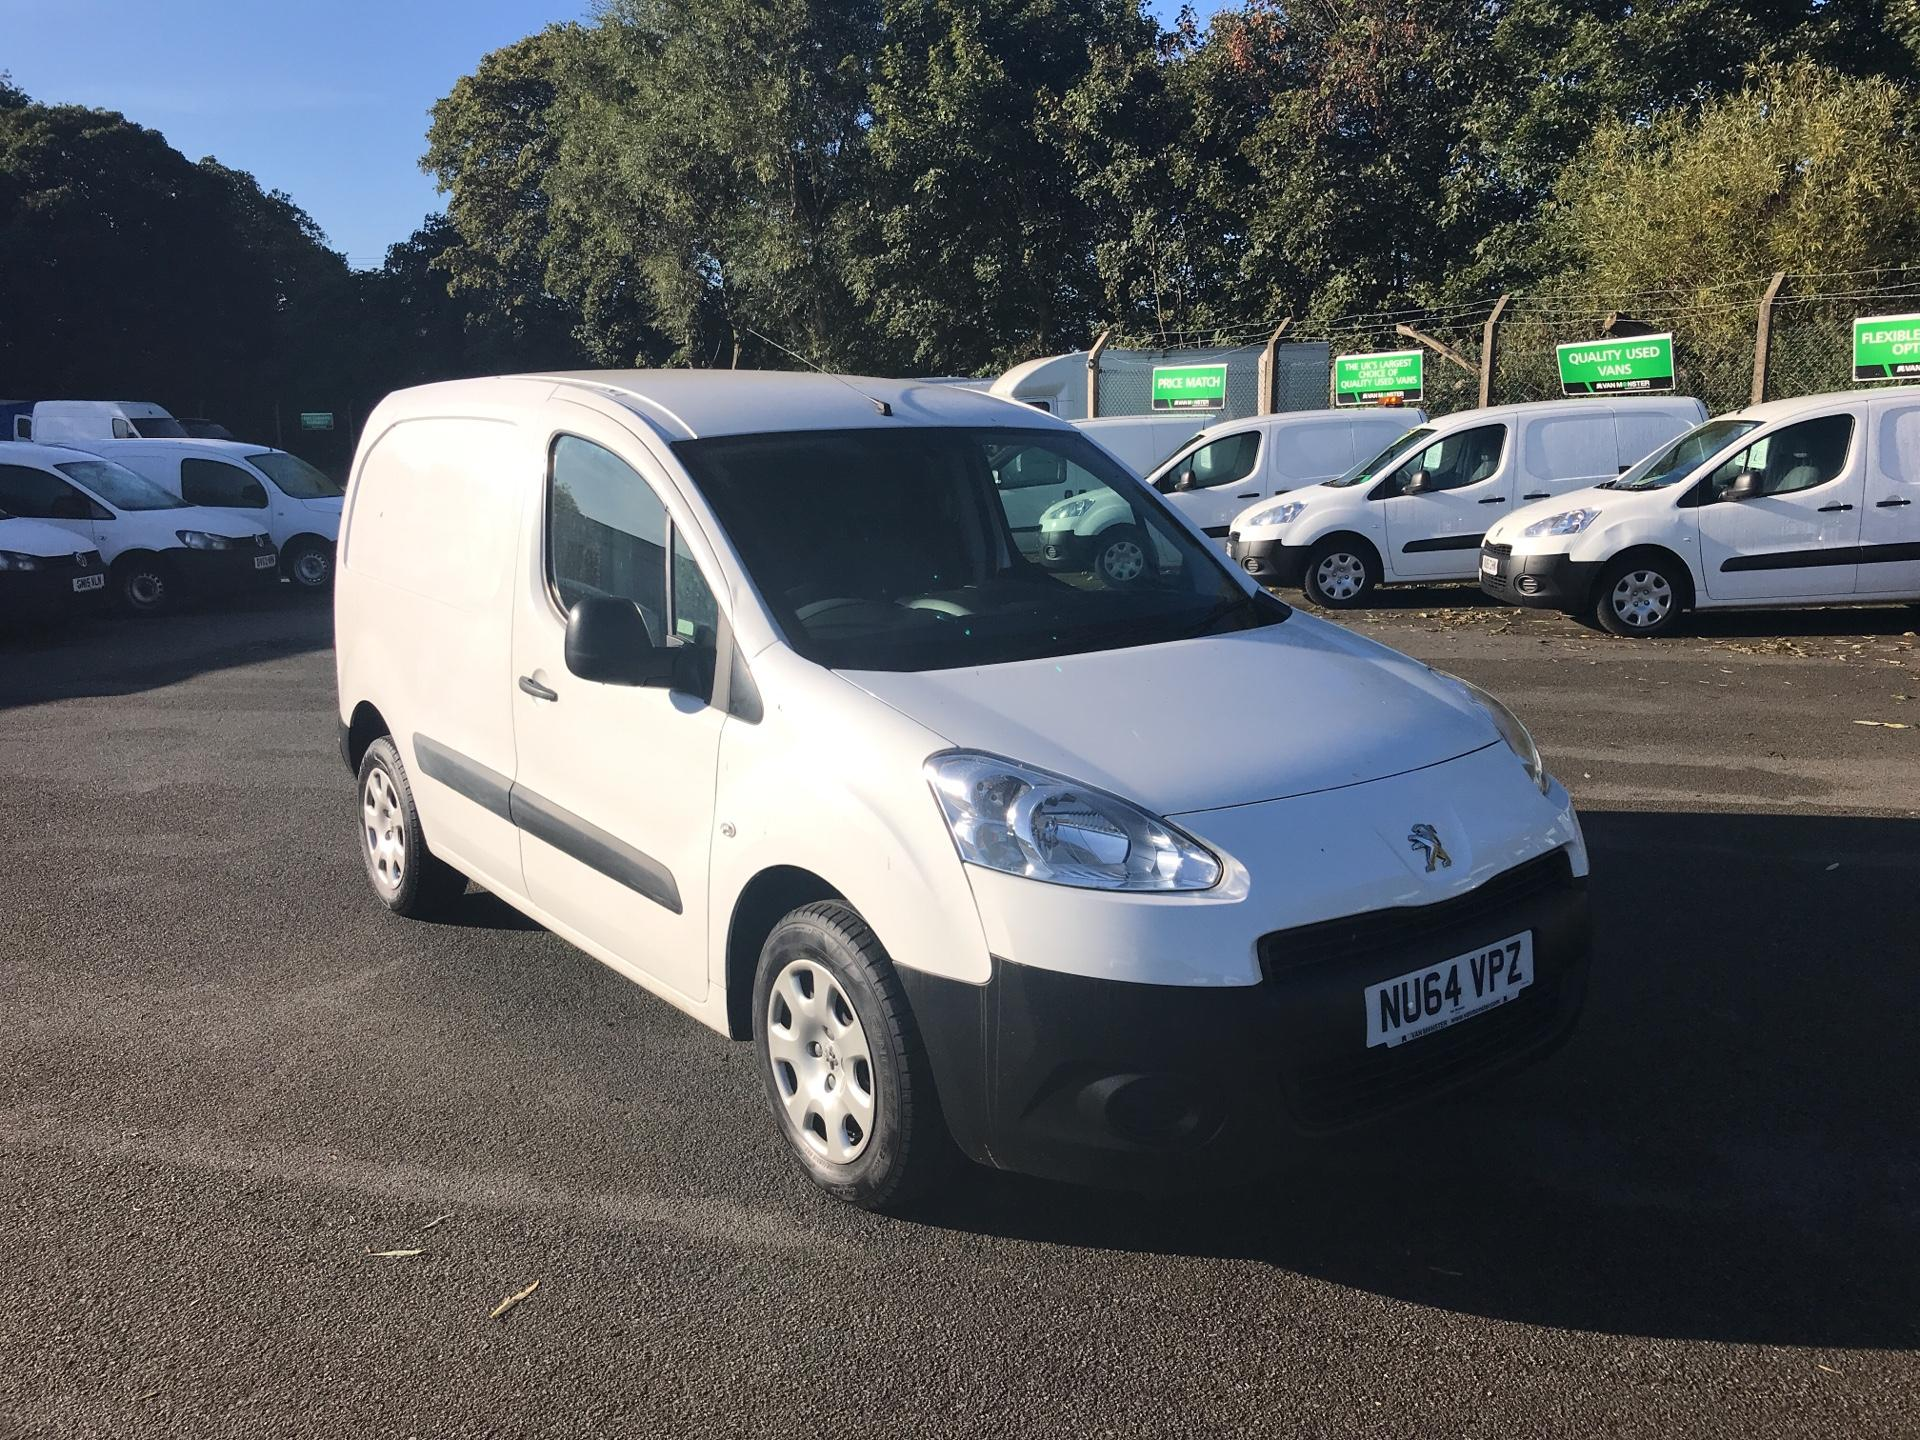 2014 Peugeot Partner L1 850 S 1.6 92PS (SLD) EURO 5 *VALUE RANGE VEHICLE - CONDITION REFLECTED IN PRICE* (NU64VPZ)